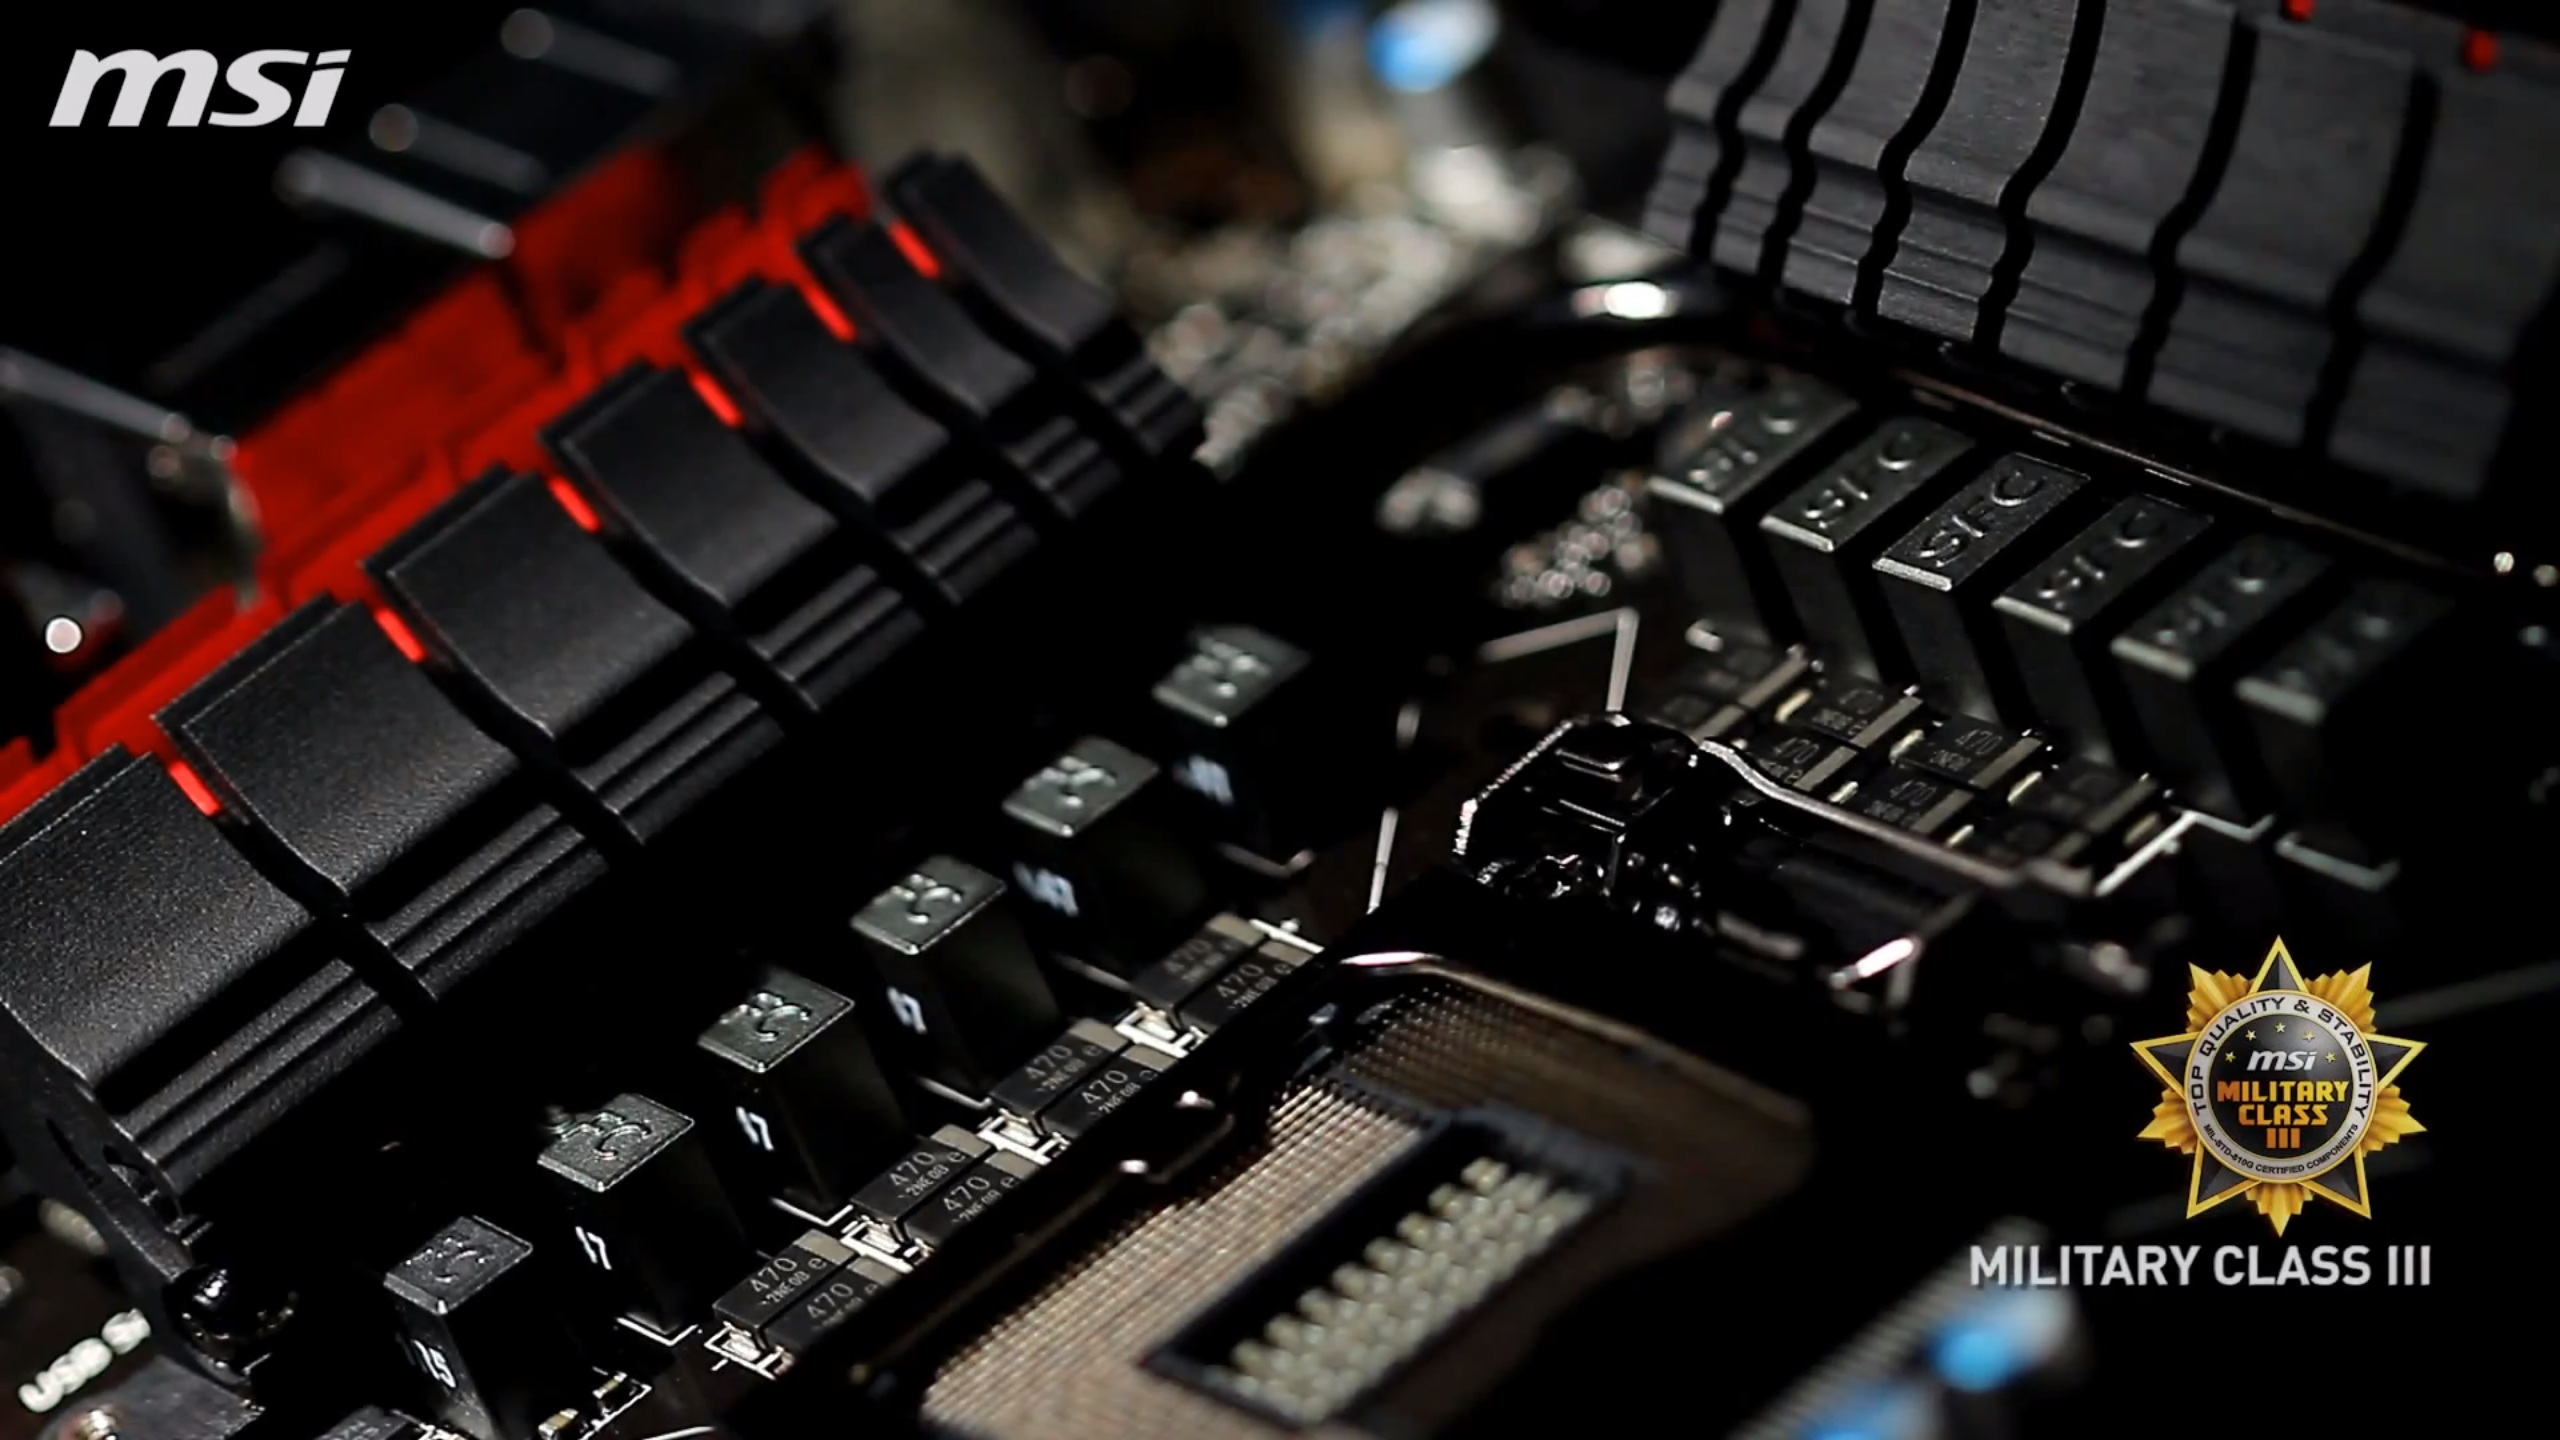 msi z77agd65 gaming motherboard unveiled packed with